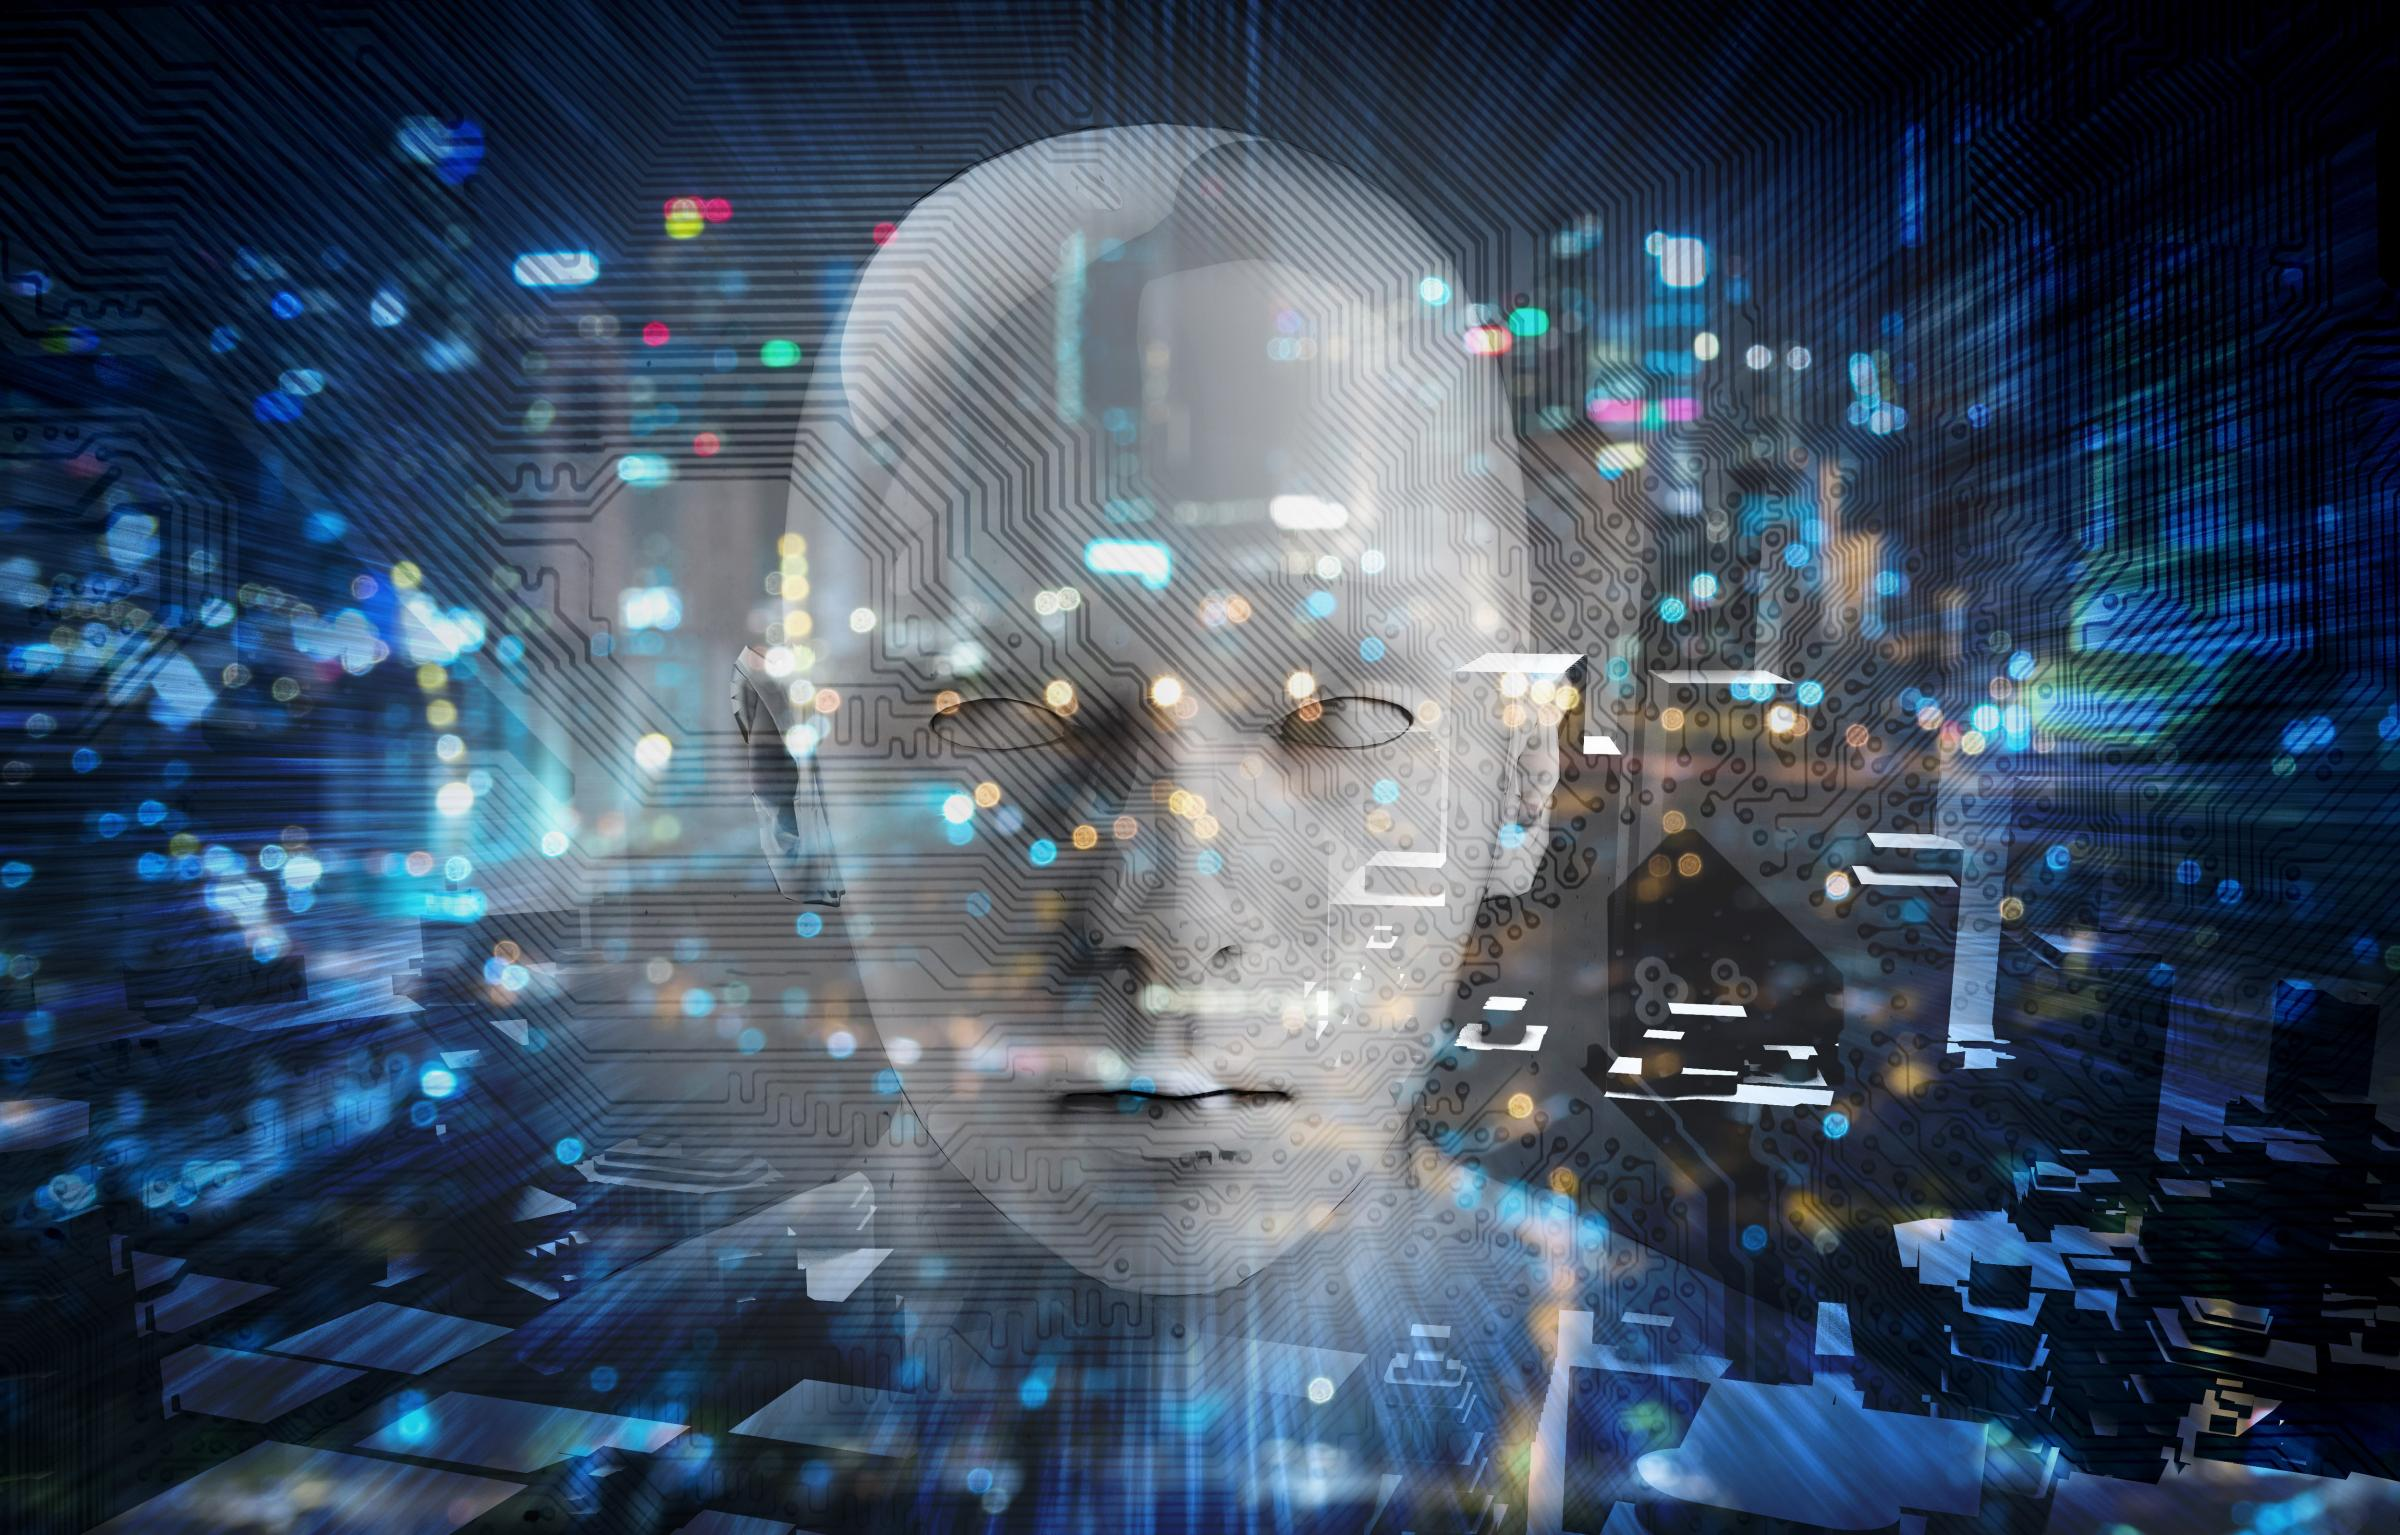 Scotland's work on artificial intelligence has attracted attention